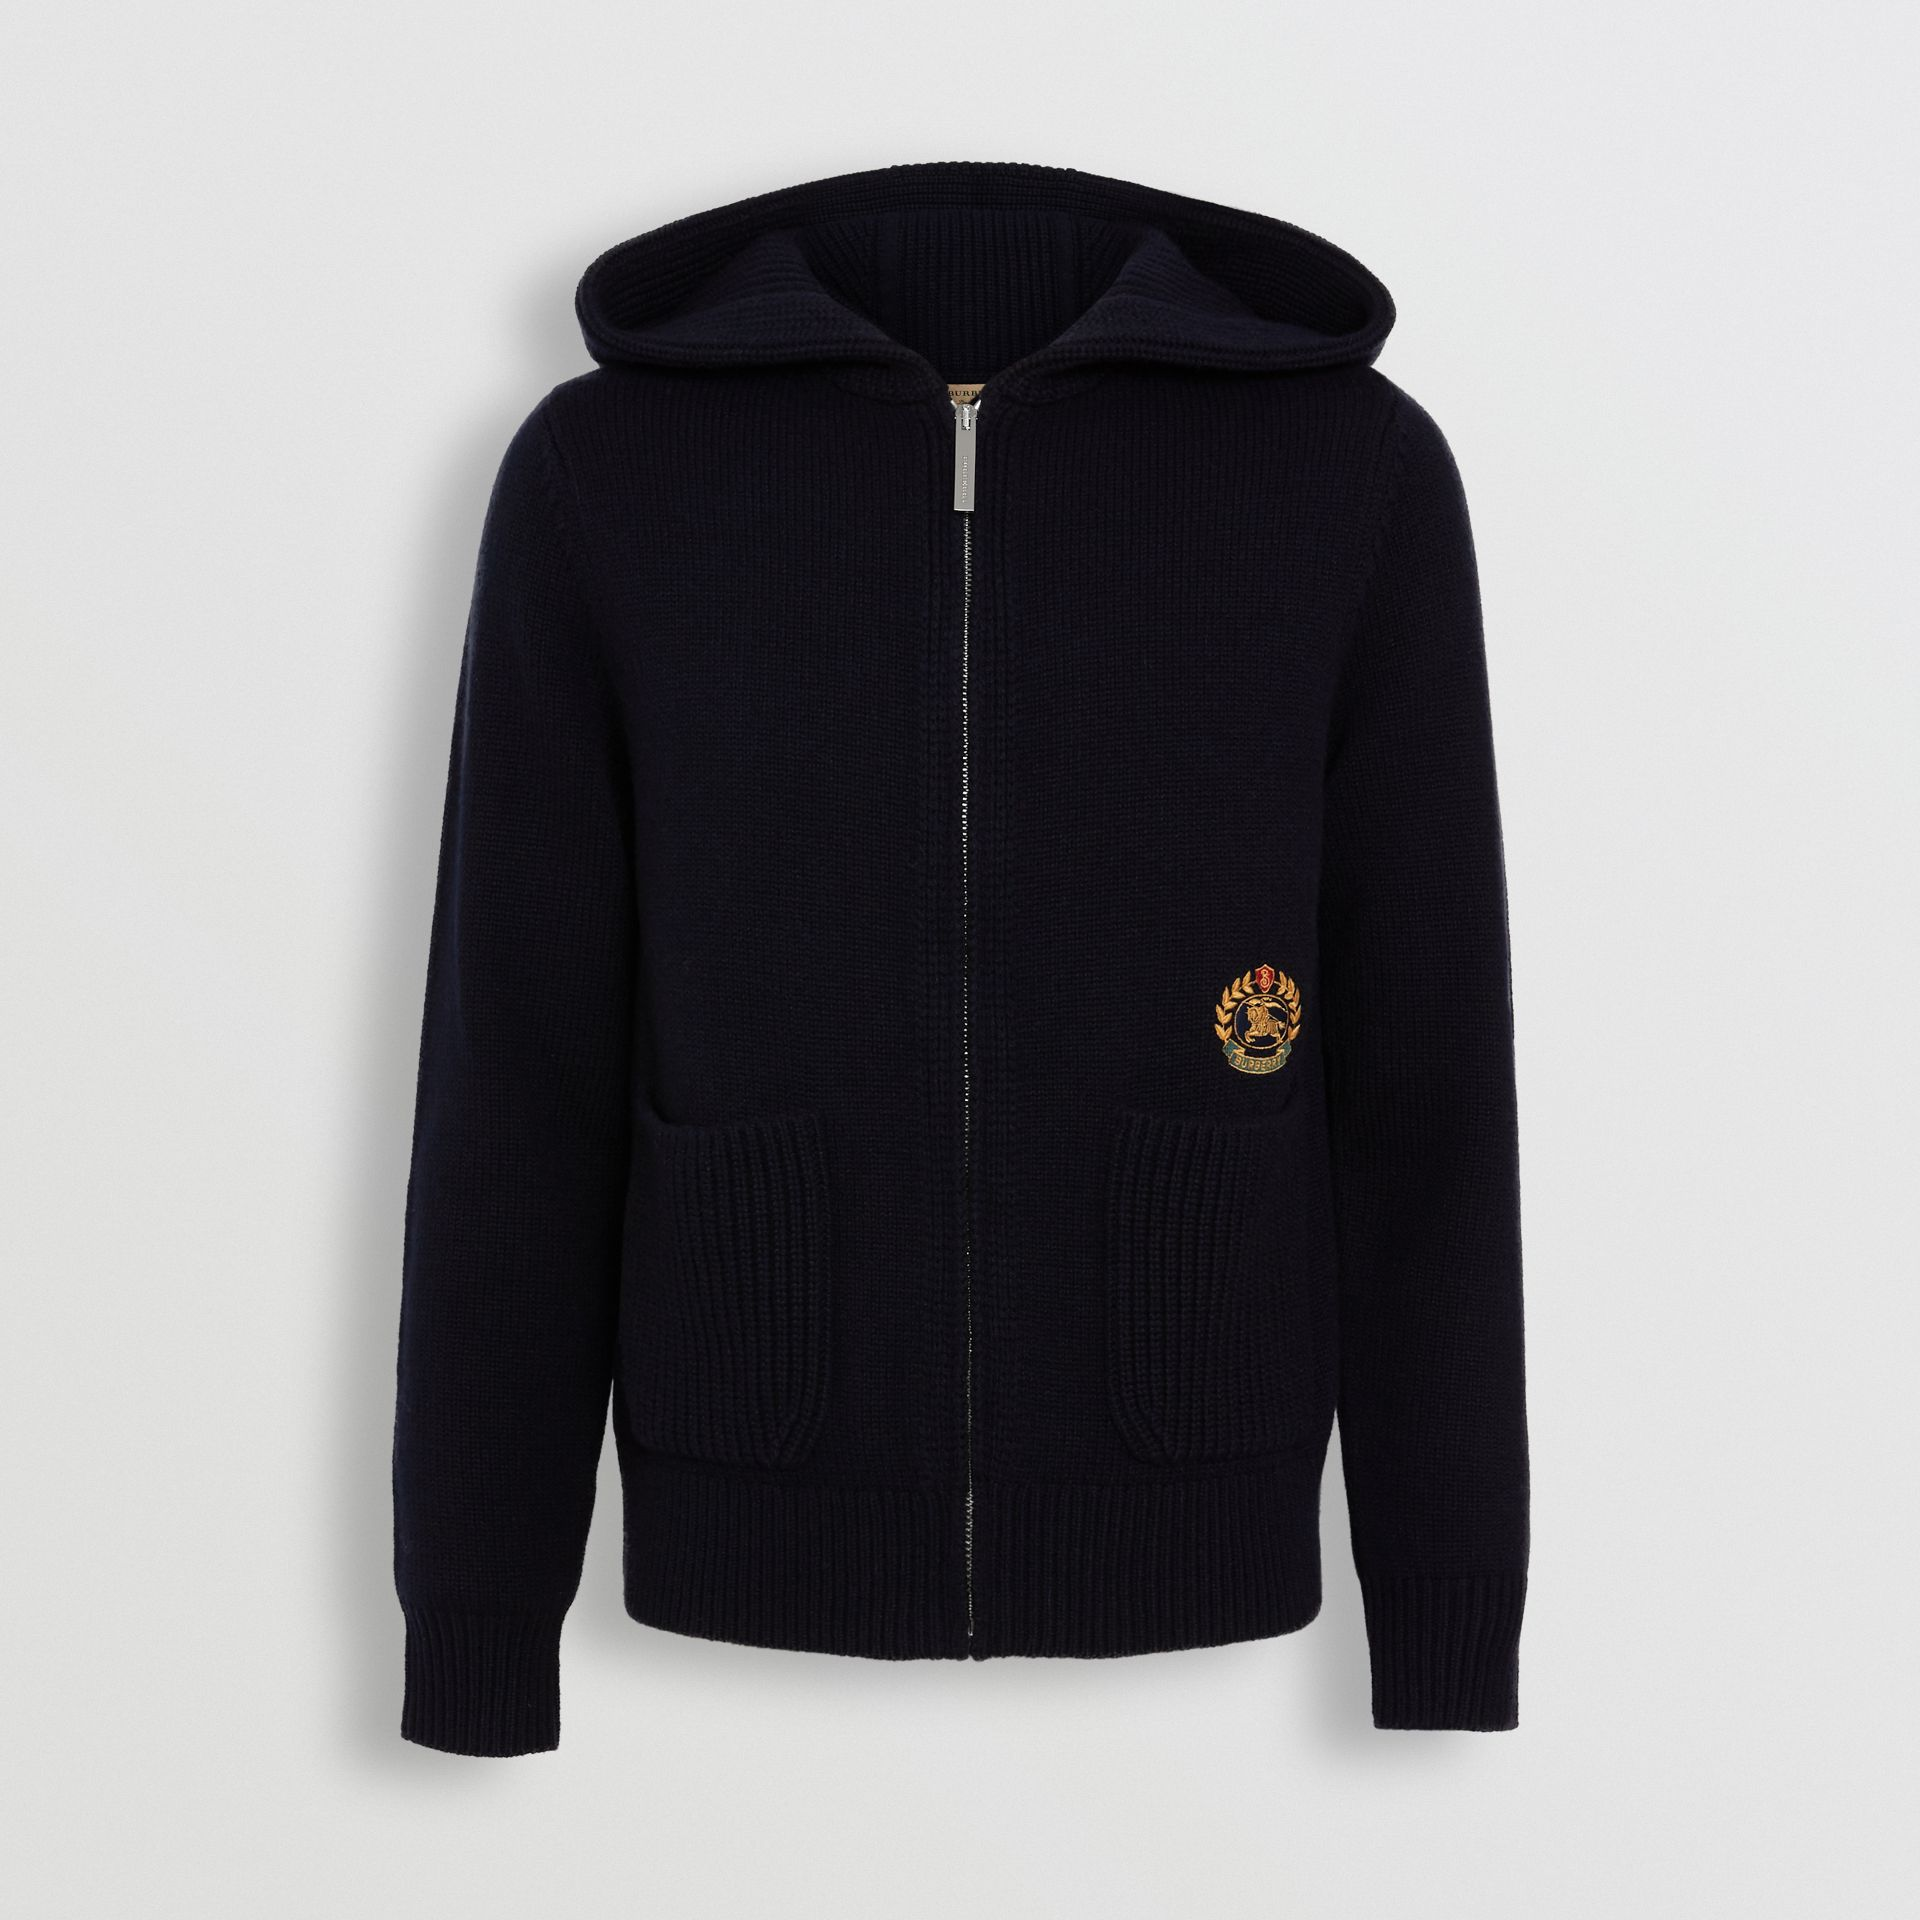 Embroidered Archive Logo Cashmere Hooded Top in Navy - Women | Burberry Singapore - gallery image 3